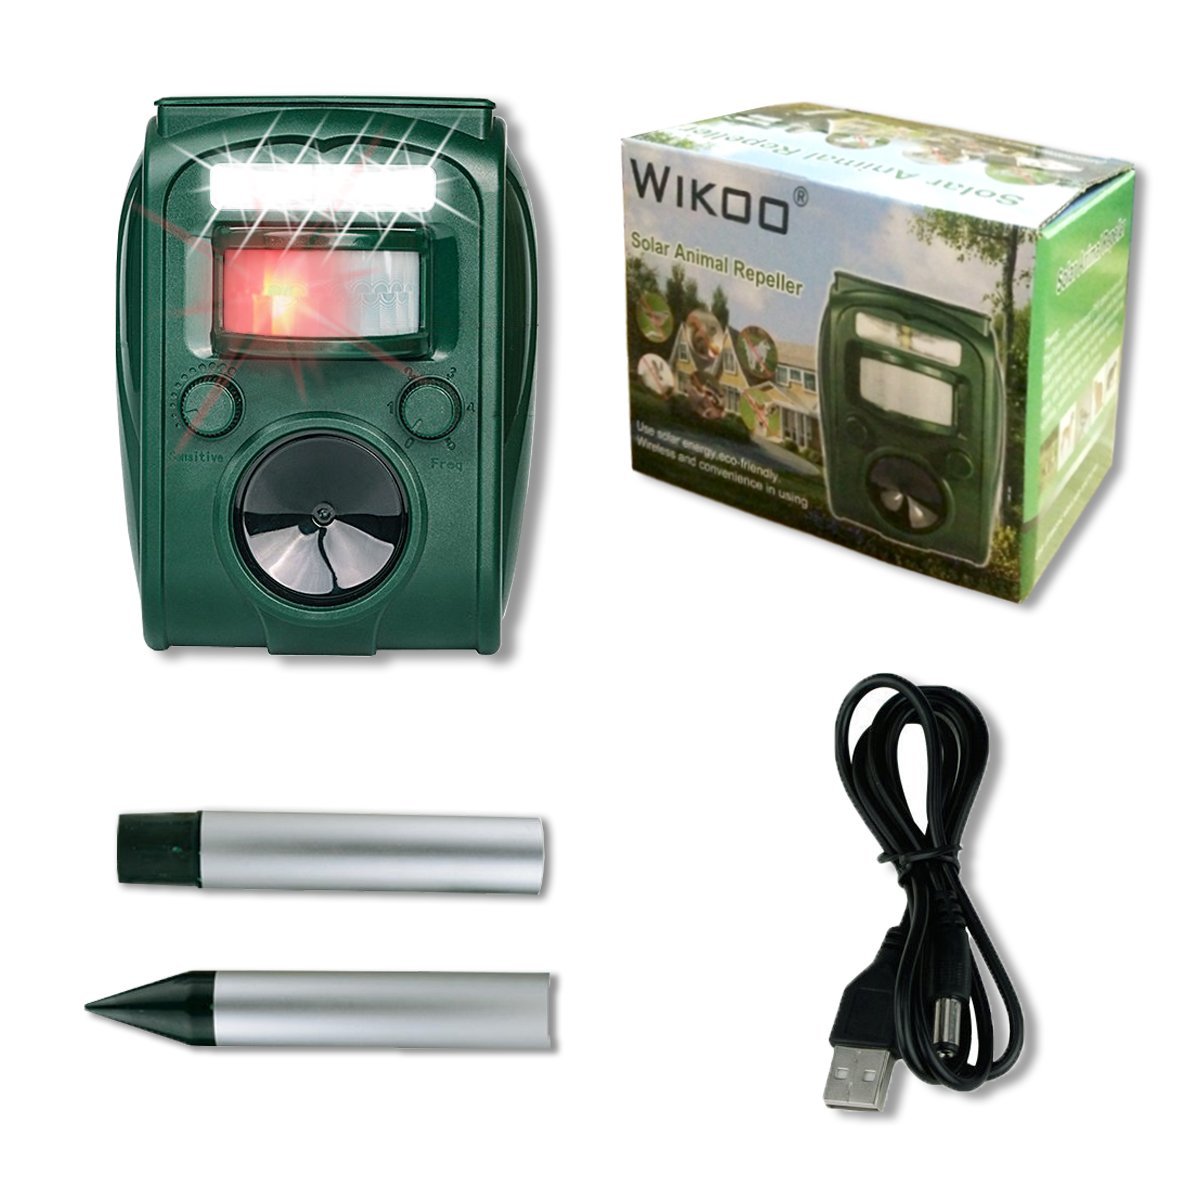 Ultrasonic Pest Repeller Wikoo Solar Powered Waterproof Outdoor Animal Scarer With Sound And Flashing Light Activated By Motion Very